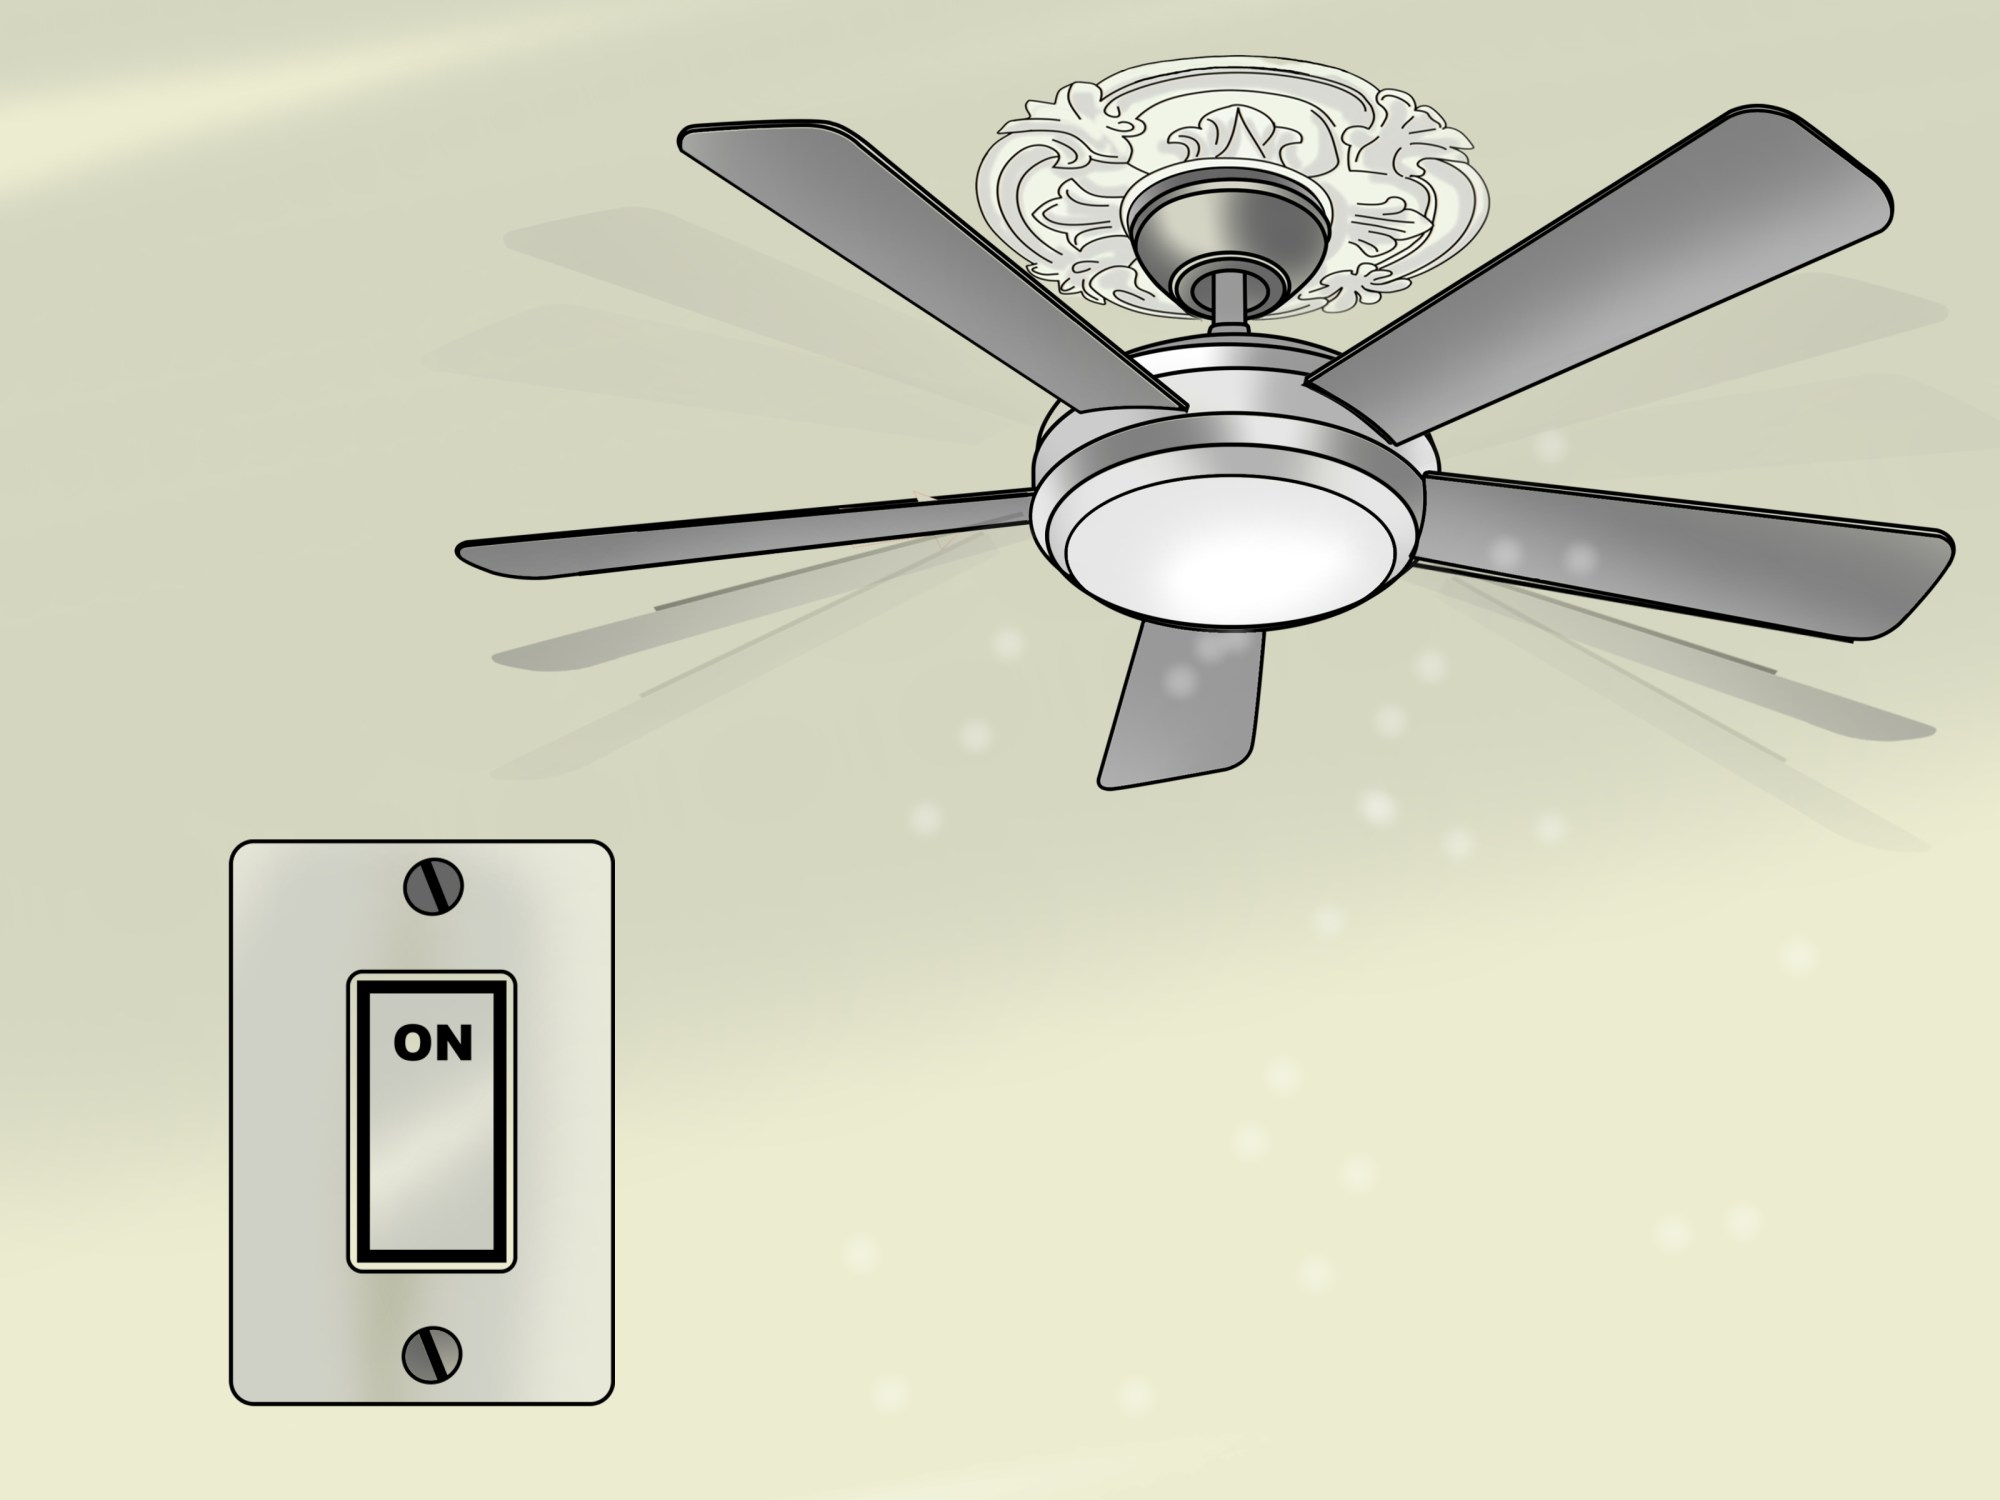 hight resolution of how to replace a ceiling fan